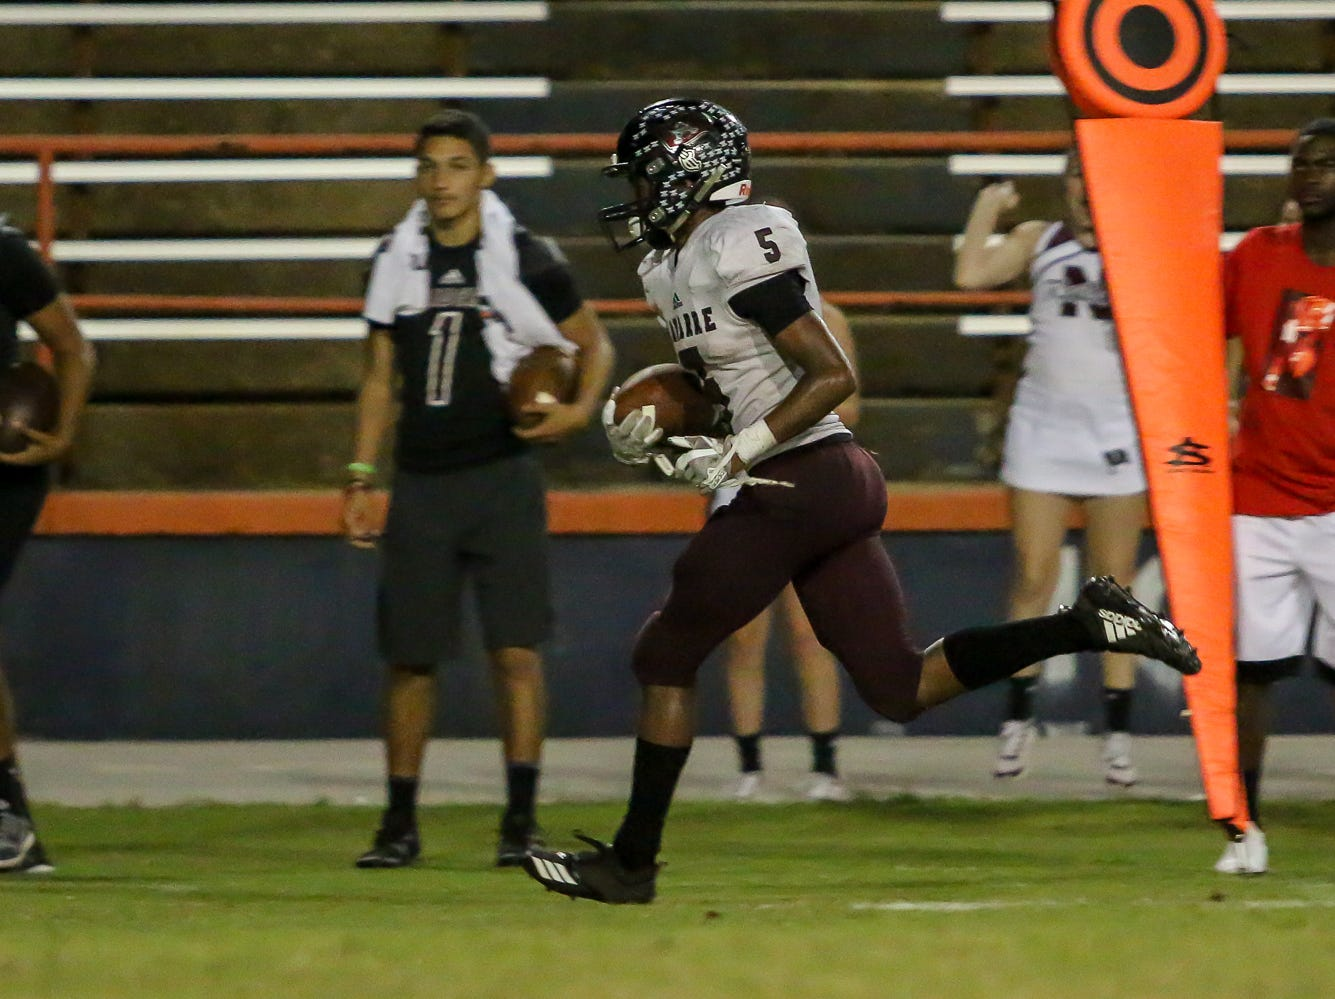 Navarre's Dante Wright (5) heads to the endzone for a 34-yard touchdown catch against the Gators during the homecoming game against Navarre at Escambia High School on Friday, October 5, 2018.